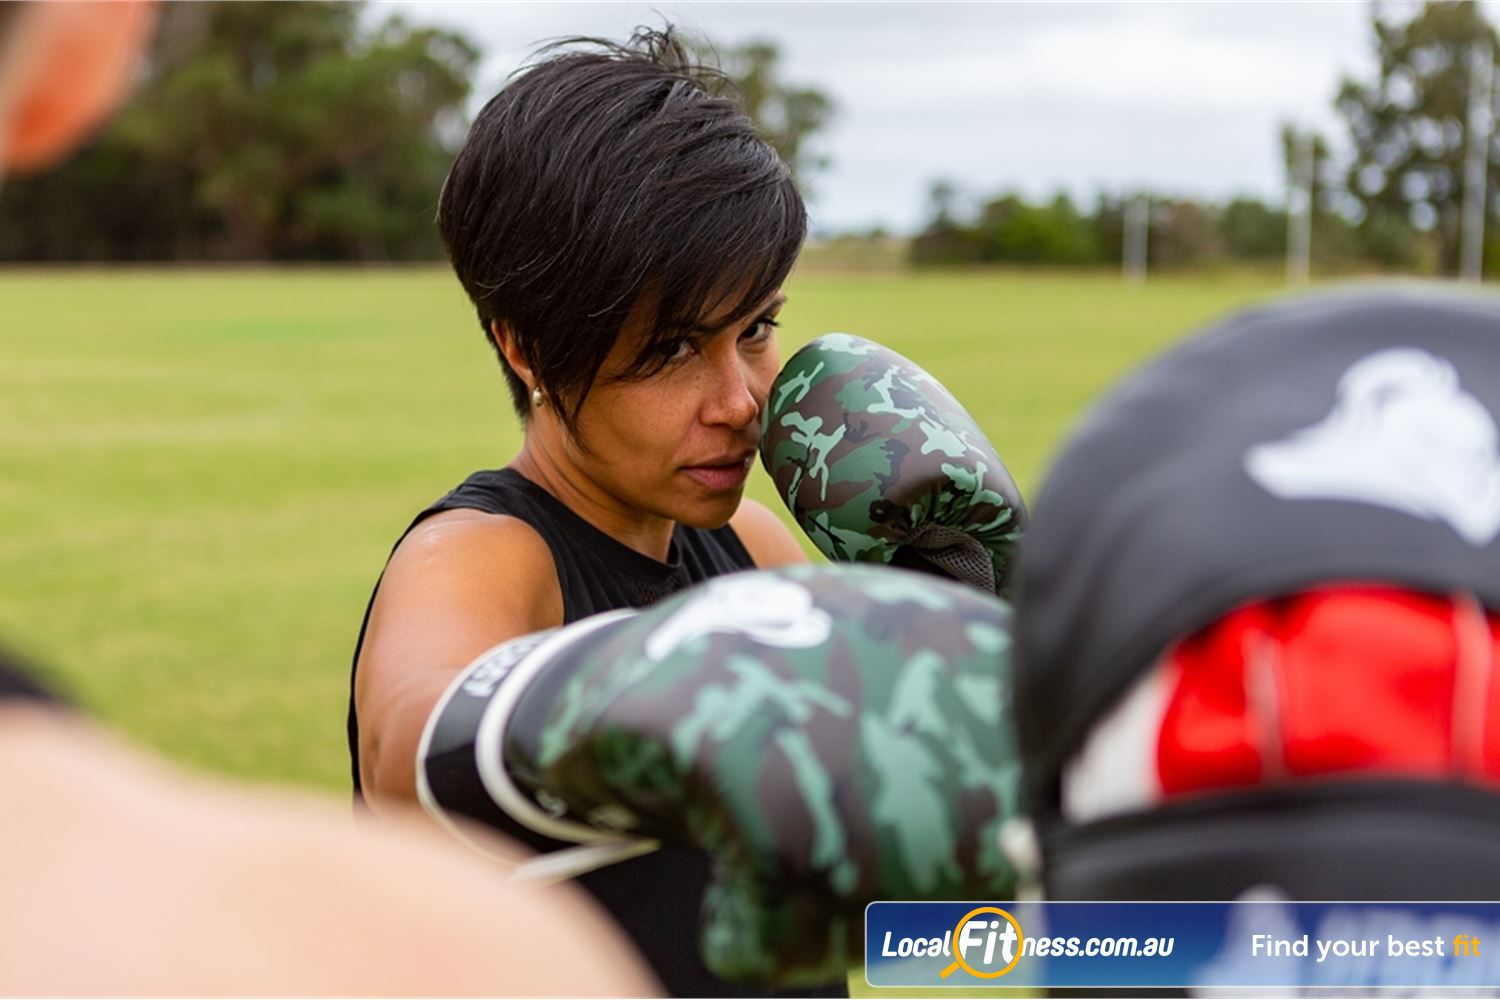 Step into Life Near Niddrie Our outdoor programs combine kicking, Essendon boxing, self-defense and more.